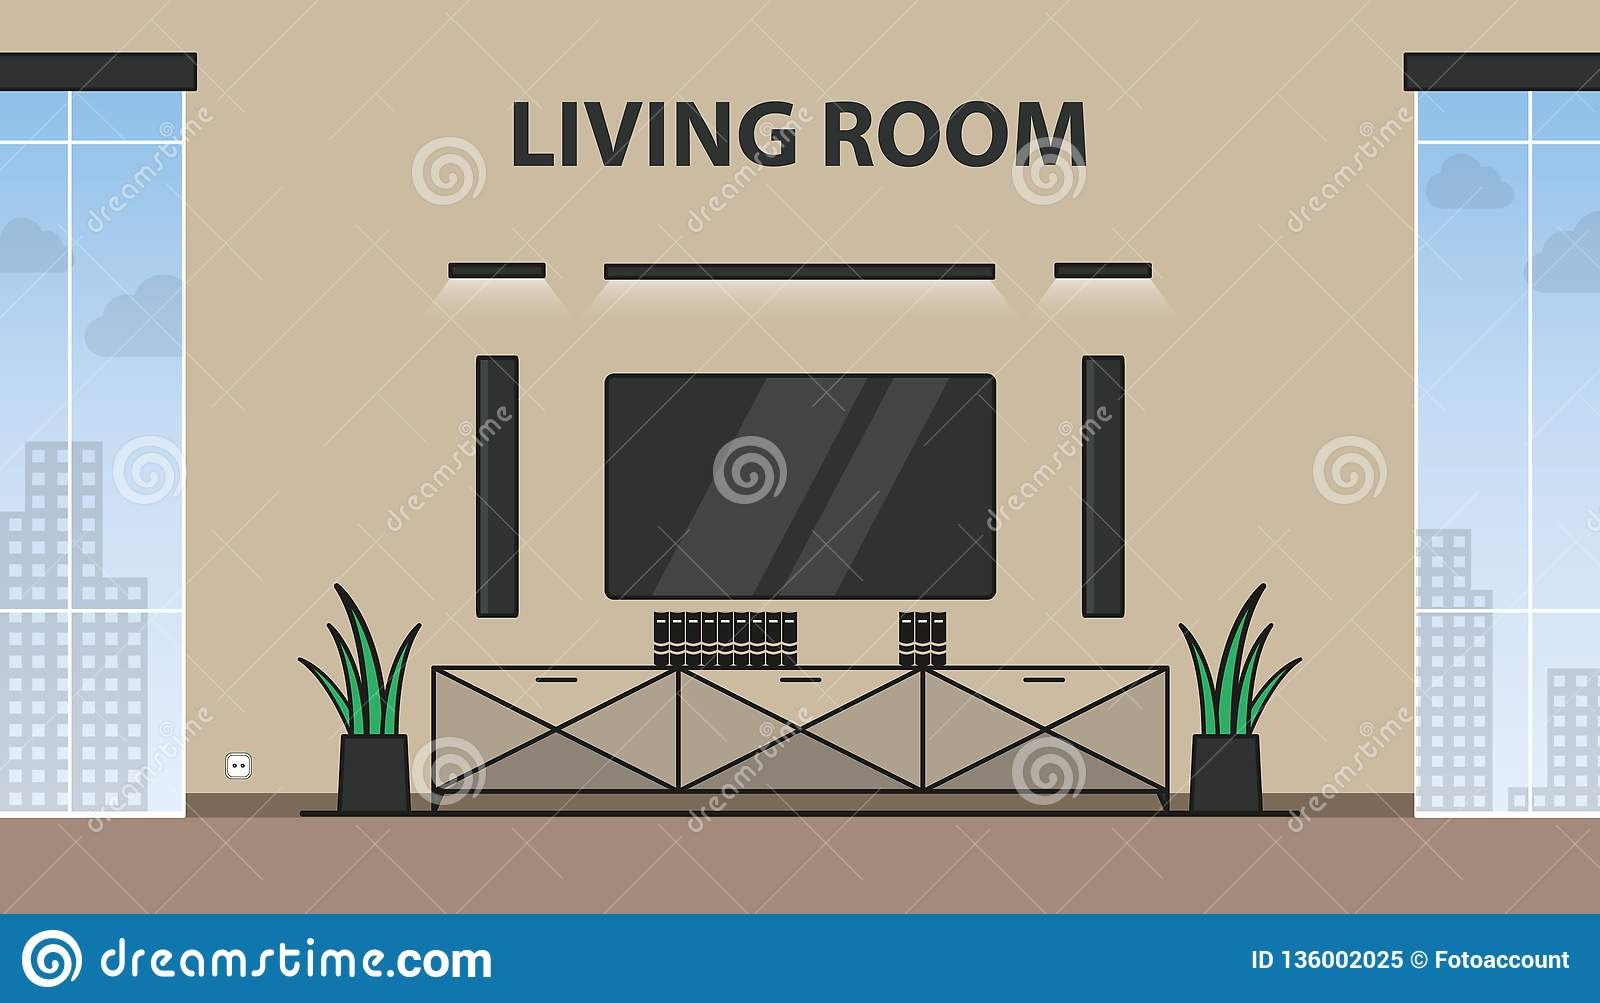 Living Room With TV, Lights, Closet, Flowers And Windows - Modern Colorful Vector Illustration